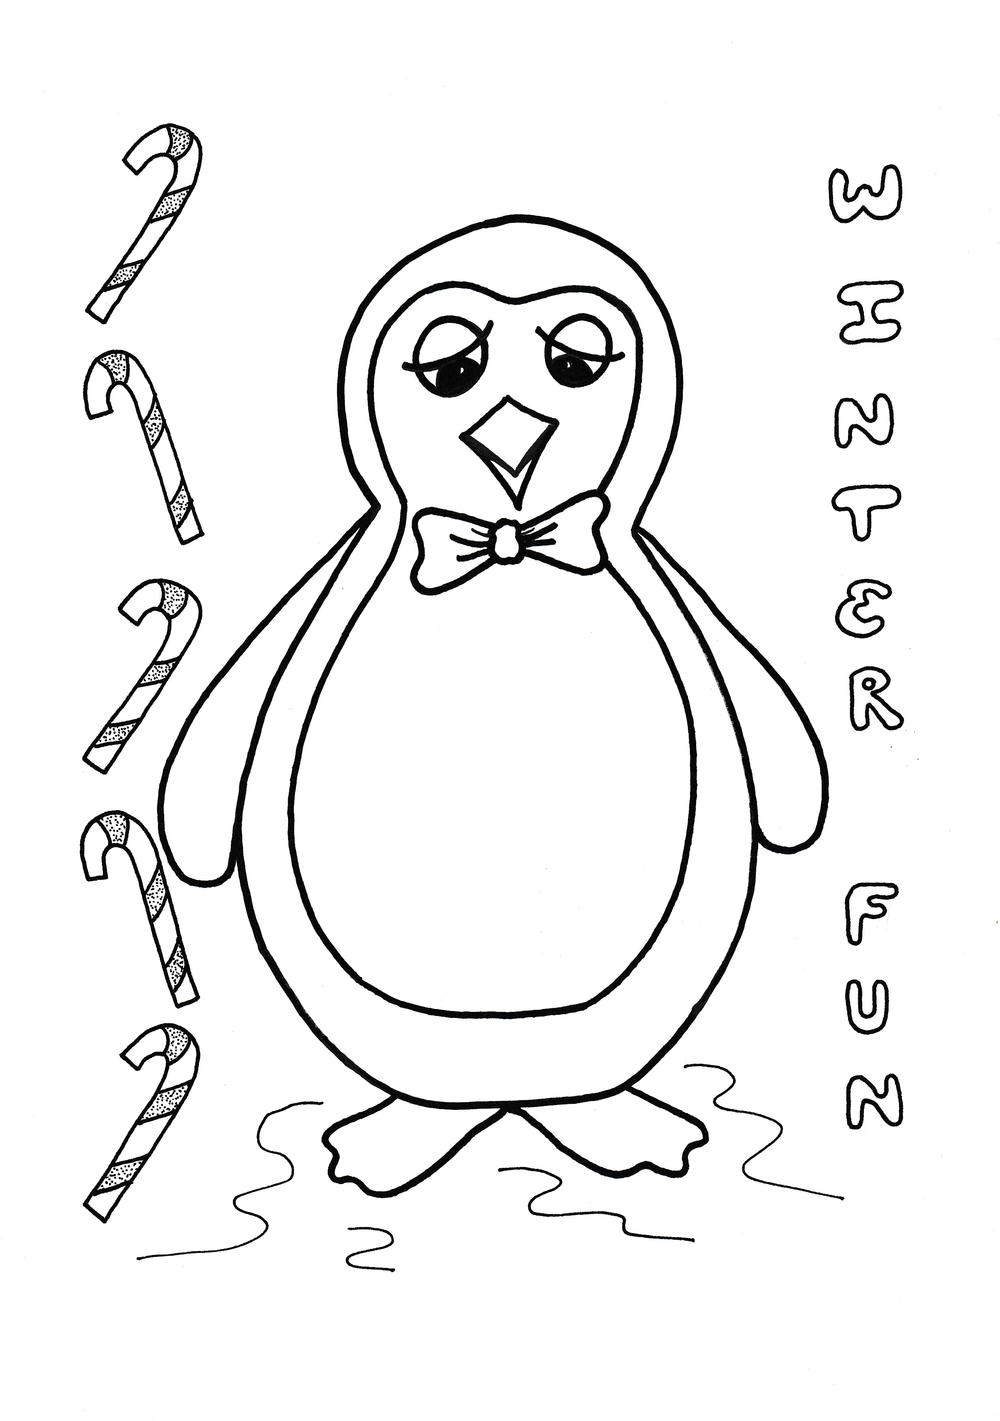 Toby the Penguin Kids Coloring